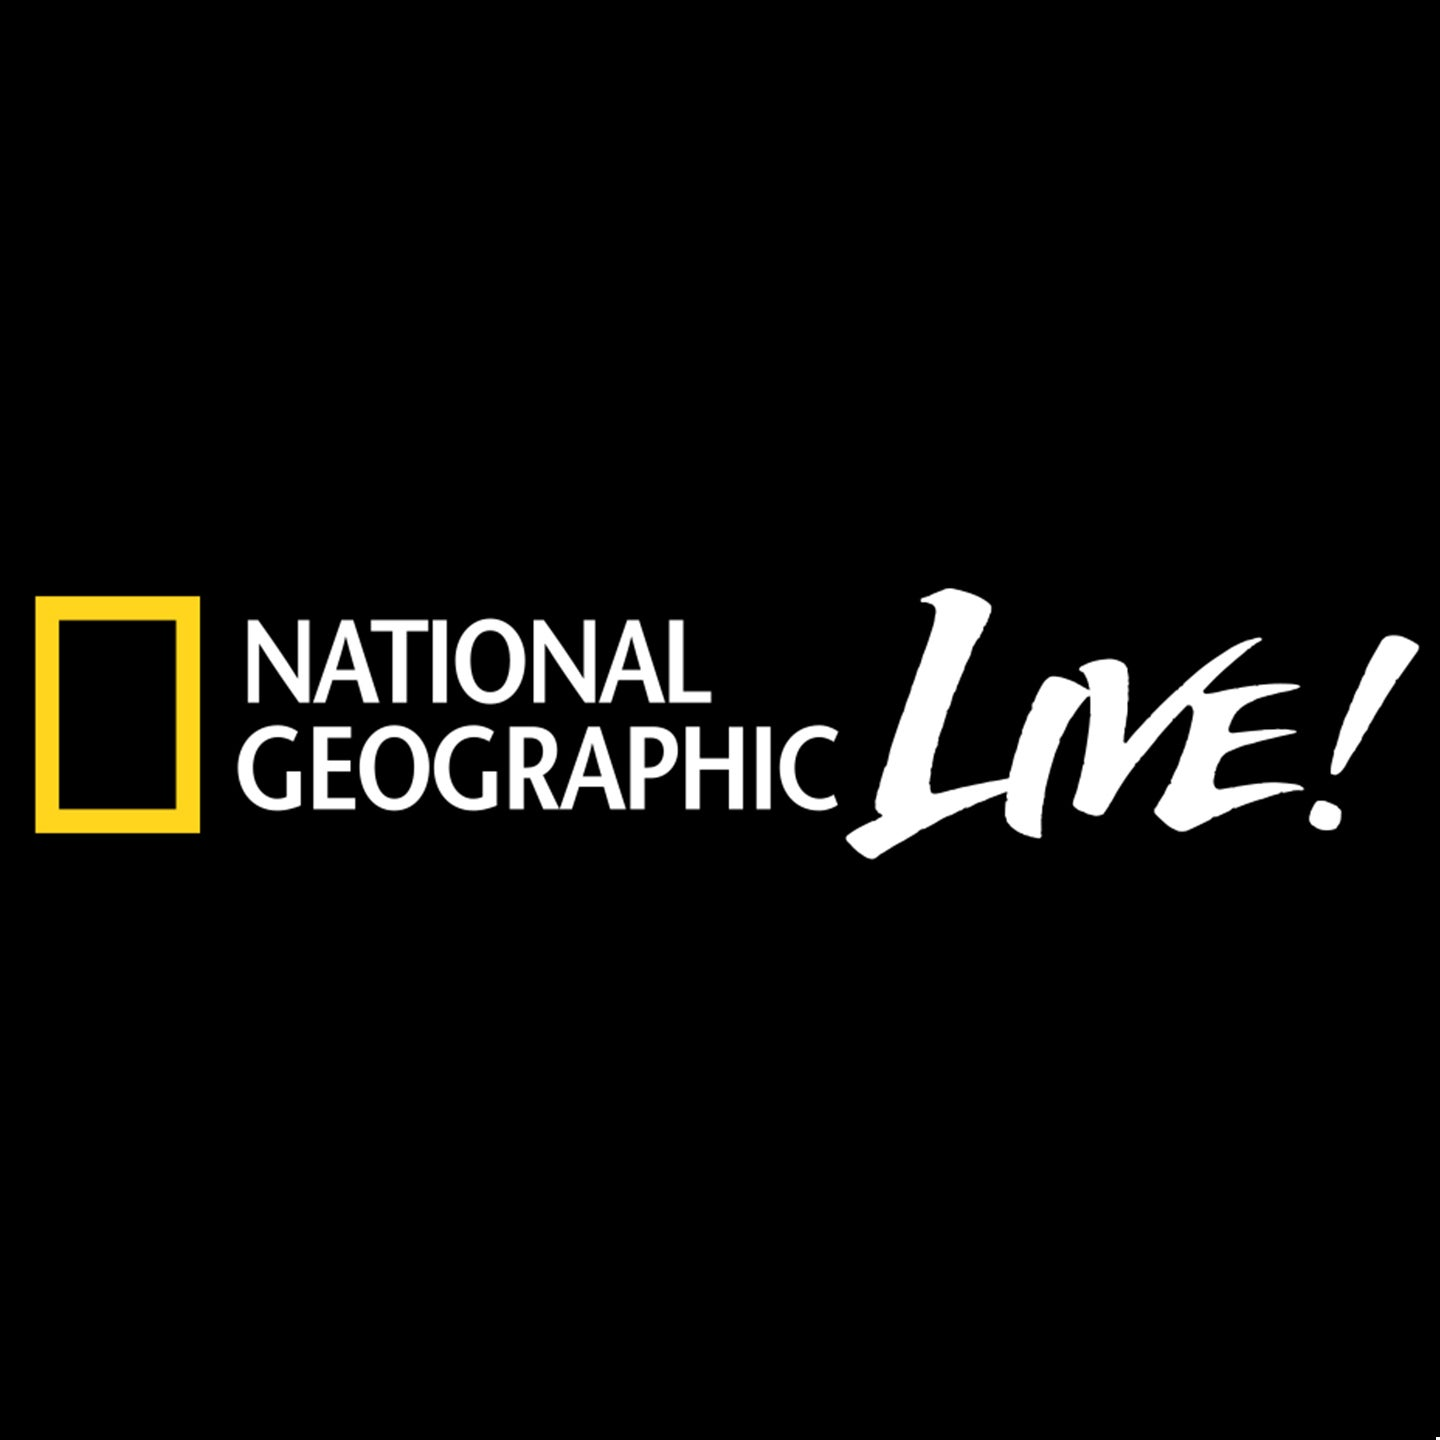 National Geographic Live! View from Above